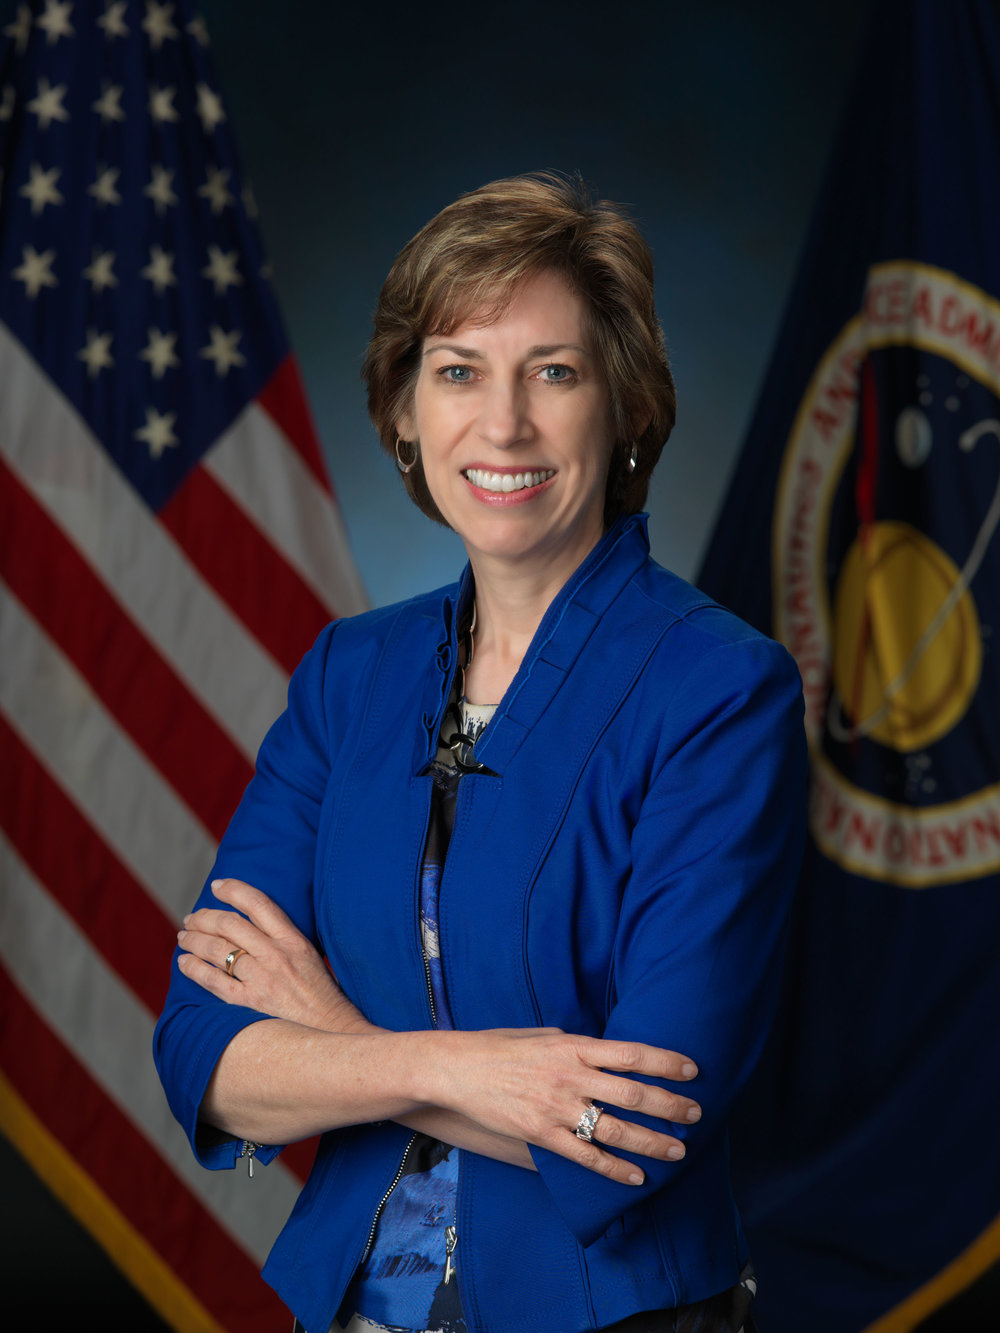 Dr. Ellen Ochoa, Director of Johnson Space Center. (Photo: NASA)